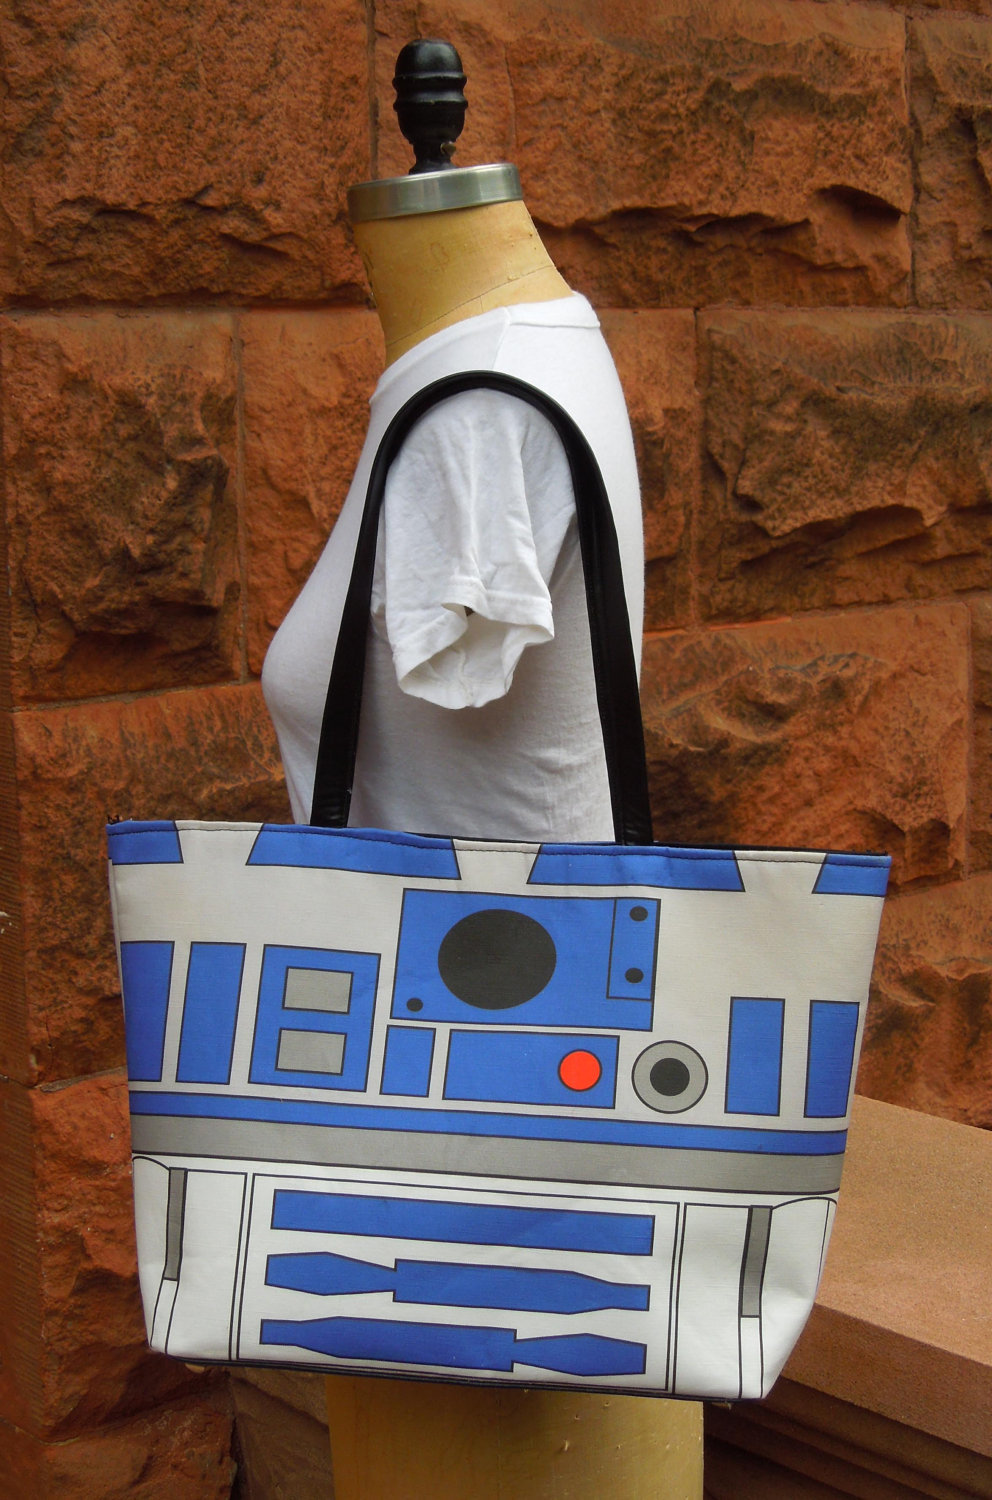 "Large Printed Star Wars R2D2 Handbag with Silver Studded Hardware and Snap Closure  This handbag includes a print I have specially designed and is digitally printed onto the bag. This is not a screenprint. The image on the bag is inspired by R2D2 from Star Wars. It surely makes an impression when worn. This bag is a printed cotton/linen mix and it has some structure to it. The bottom of the bag includes silver studded hardware. Straps and the bottom are high-quality faux leather. Inner pocket with embroidered logo. 1"" Magnetic snap Closure.  (vía OpThreat)"